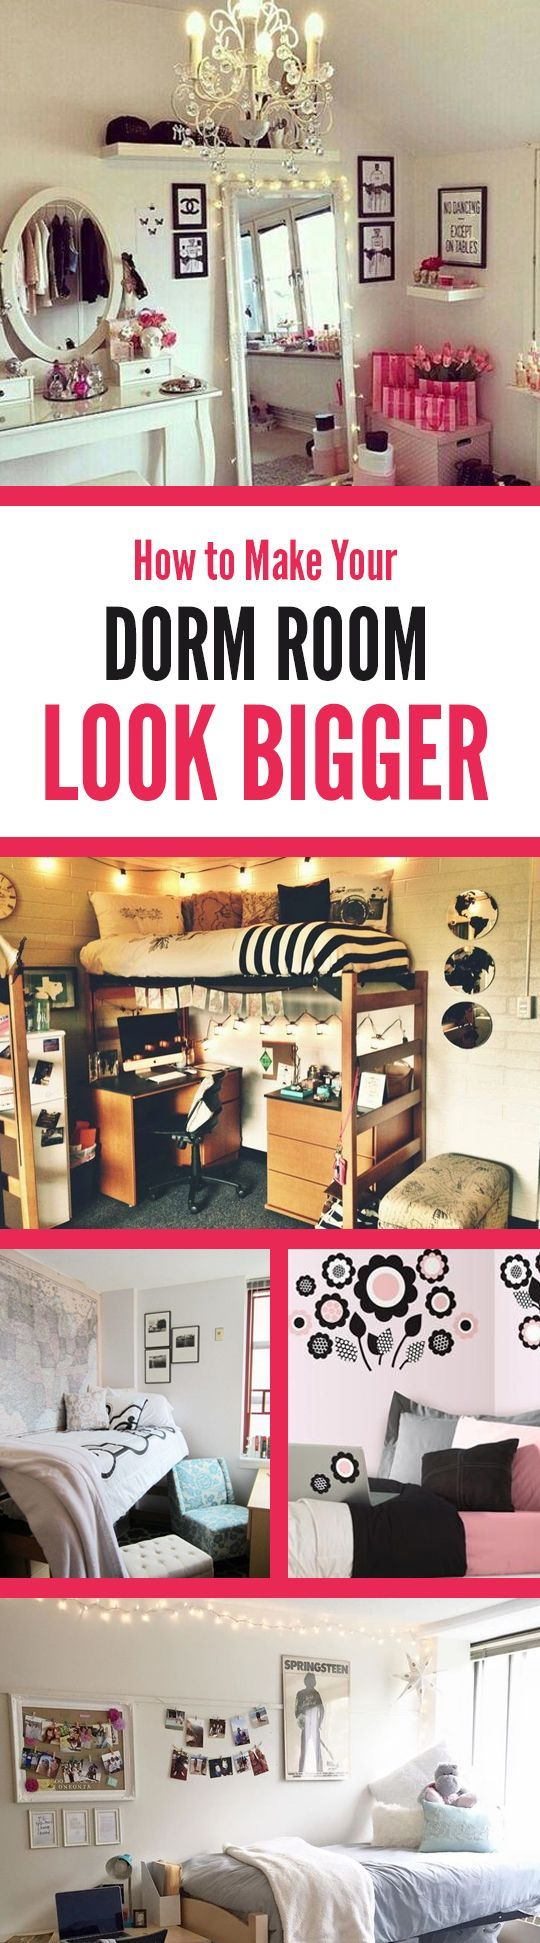 6 Tips to Make your Dorm Room Look Bigger // Great ideas for your Baylor dorm in here!